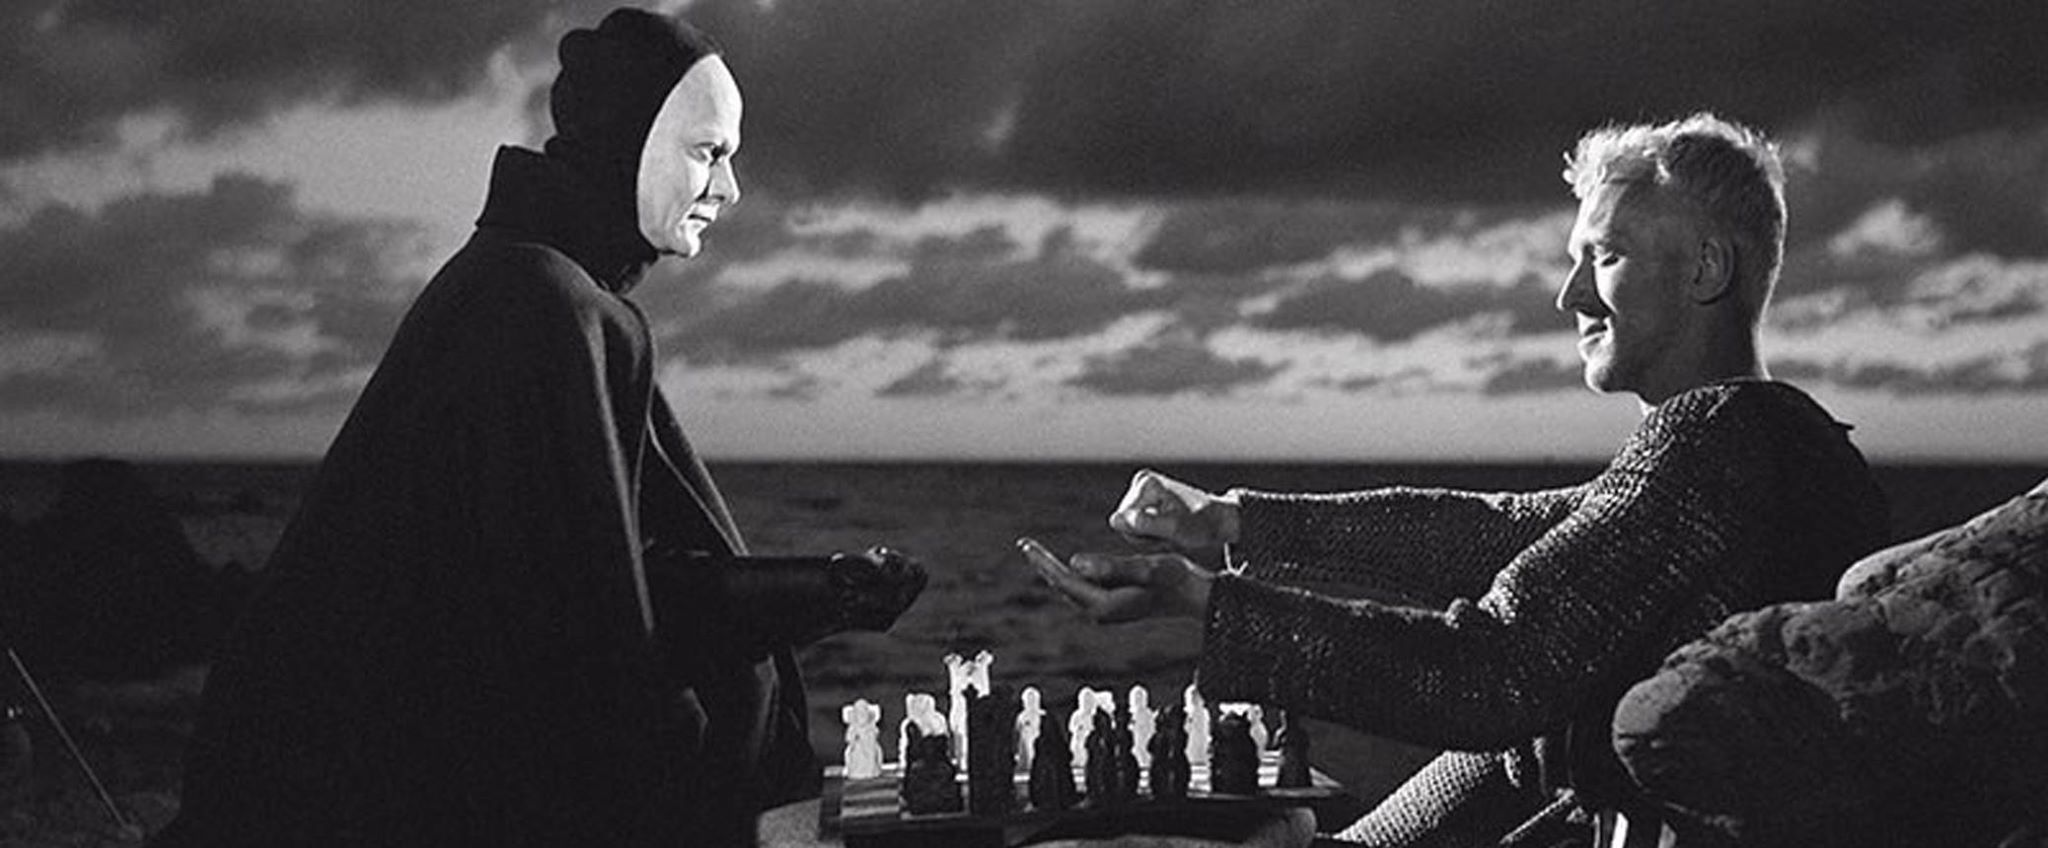 the seventh seal - кино вечер в initLab